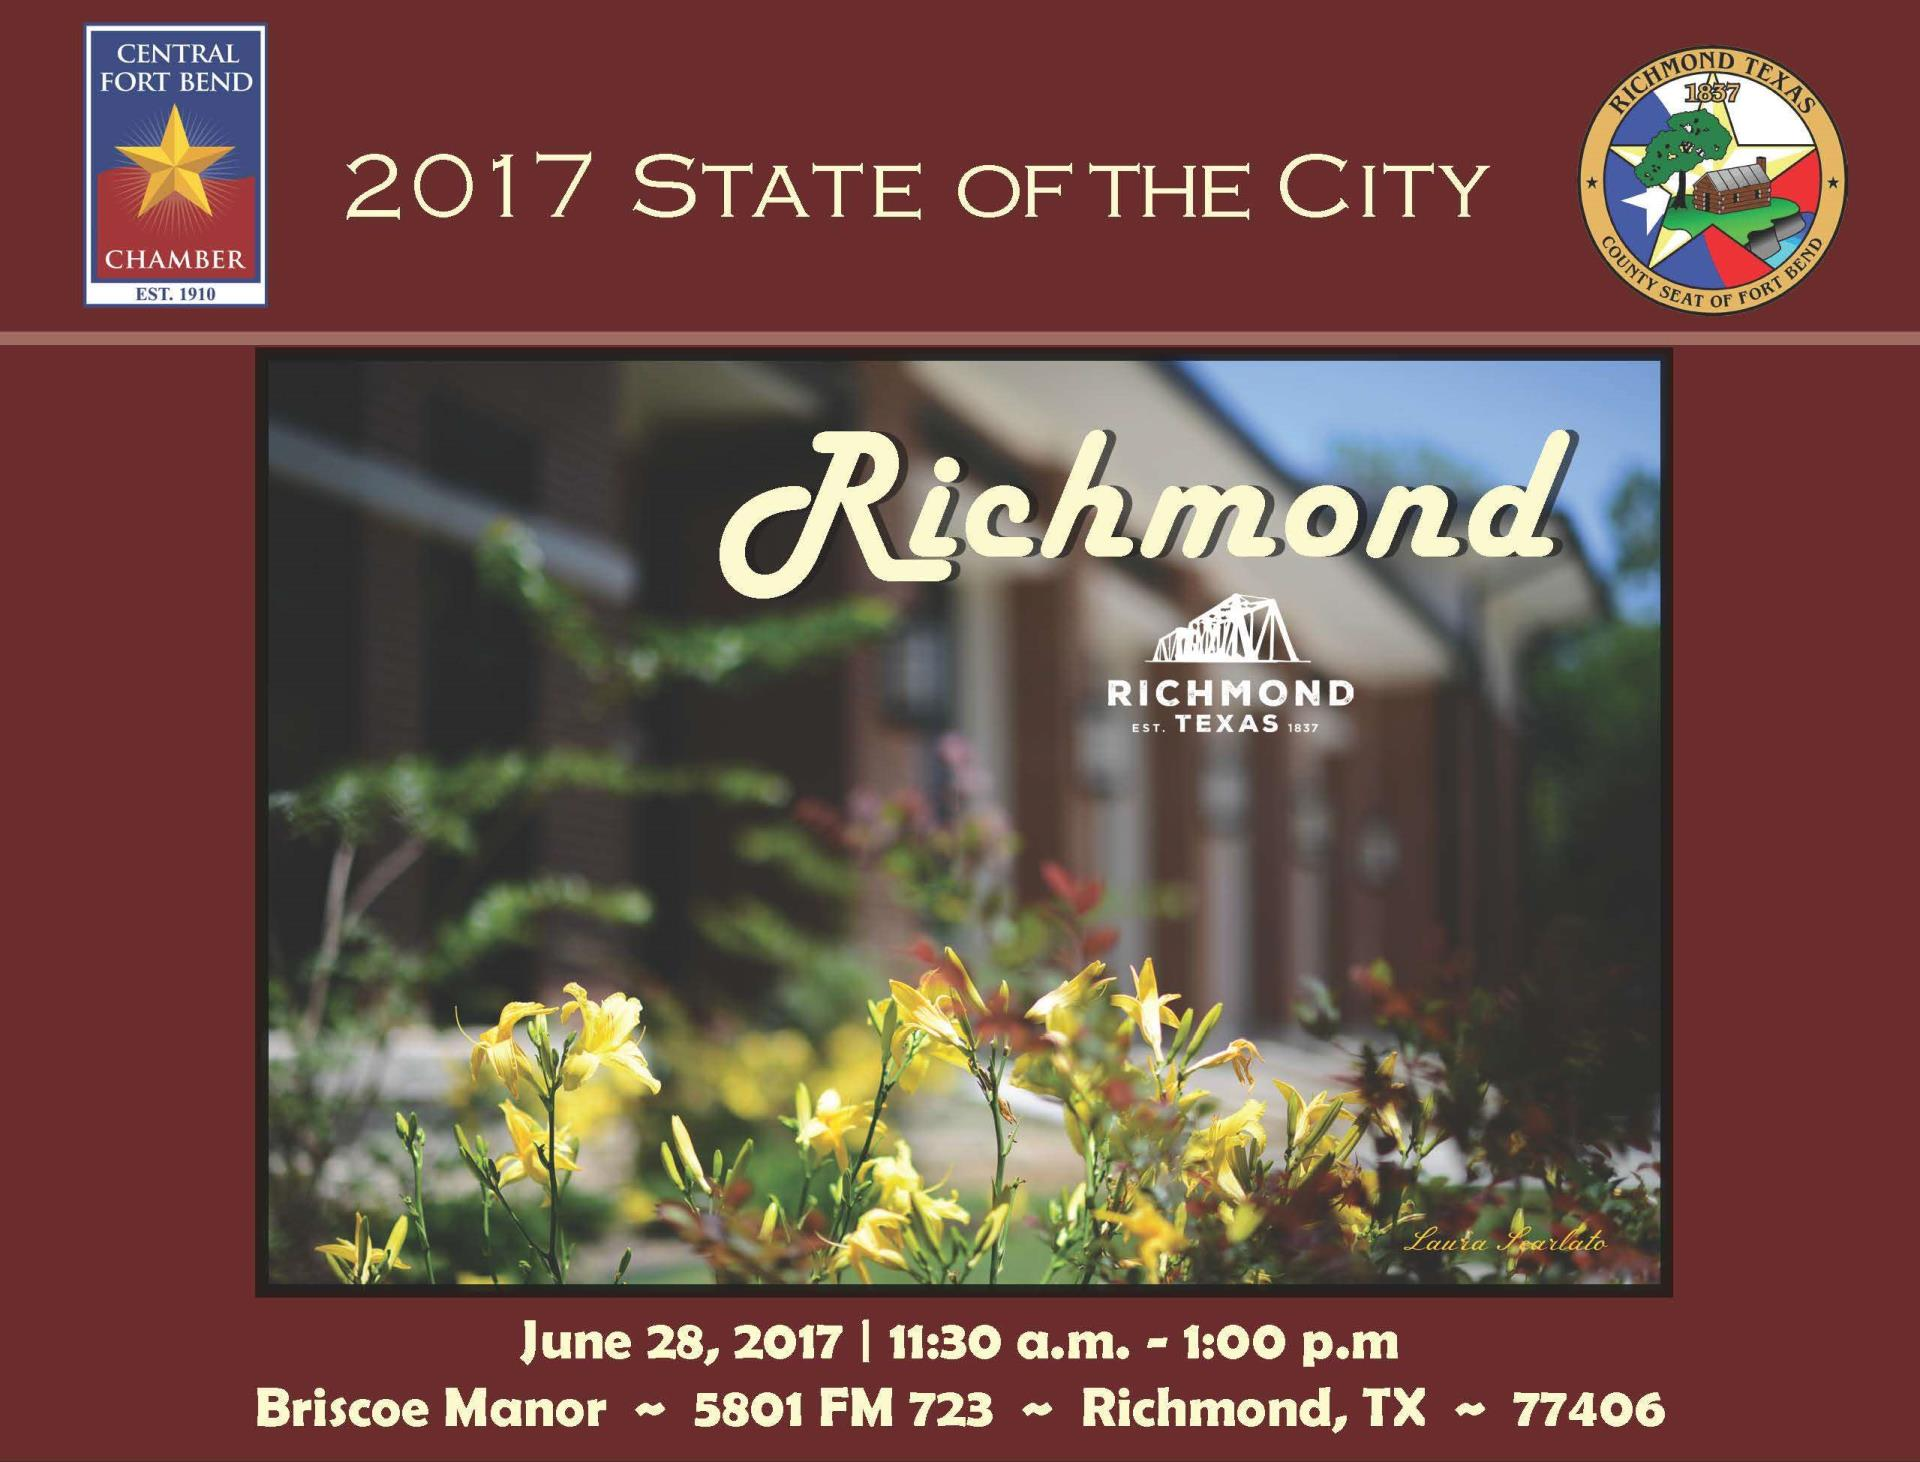 2017 State of the City Richmond Flyer 5.17.17